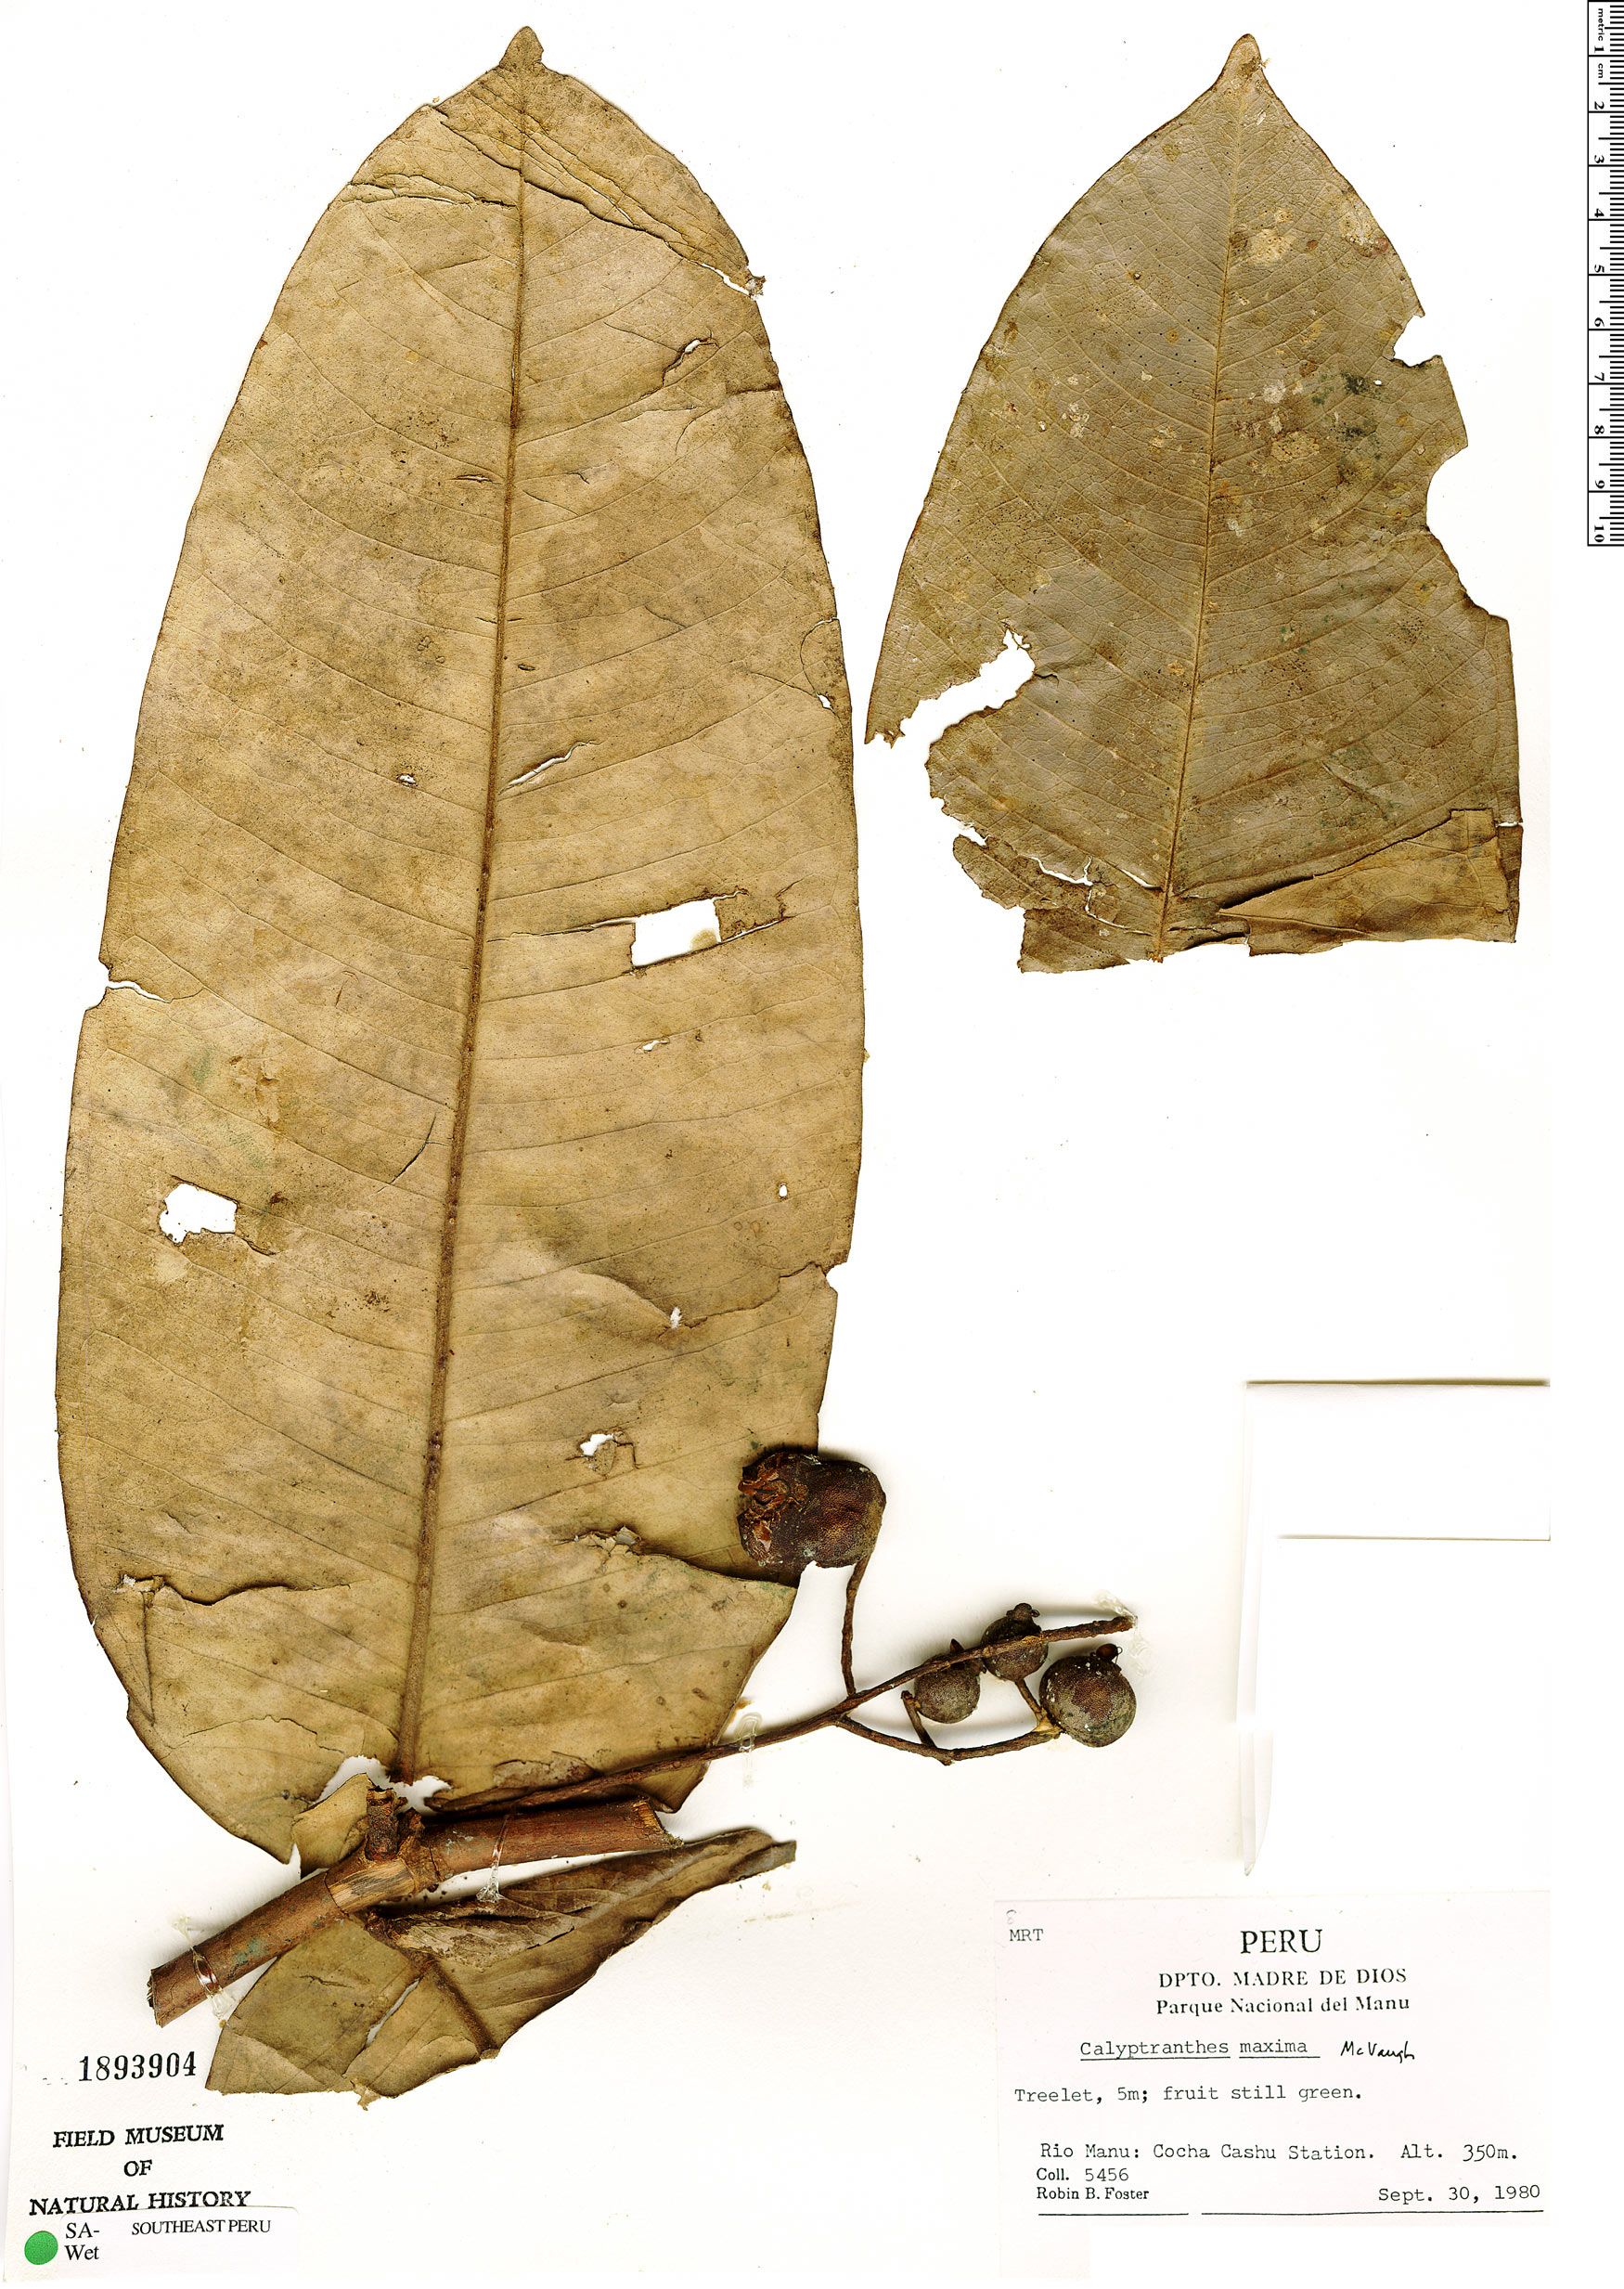 Specimen: Calyptranthes